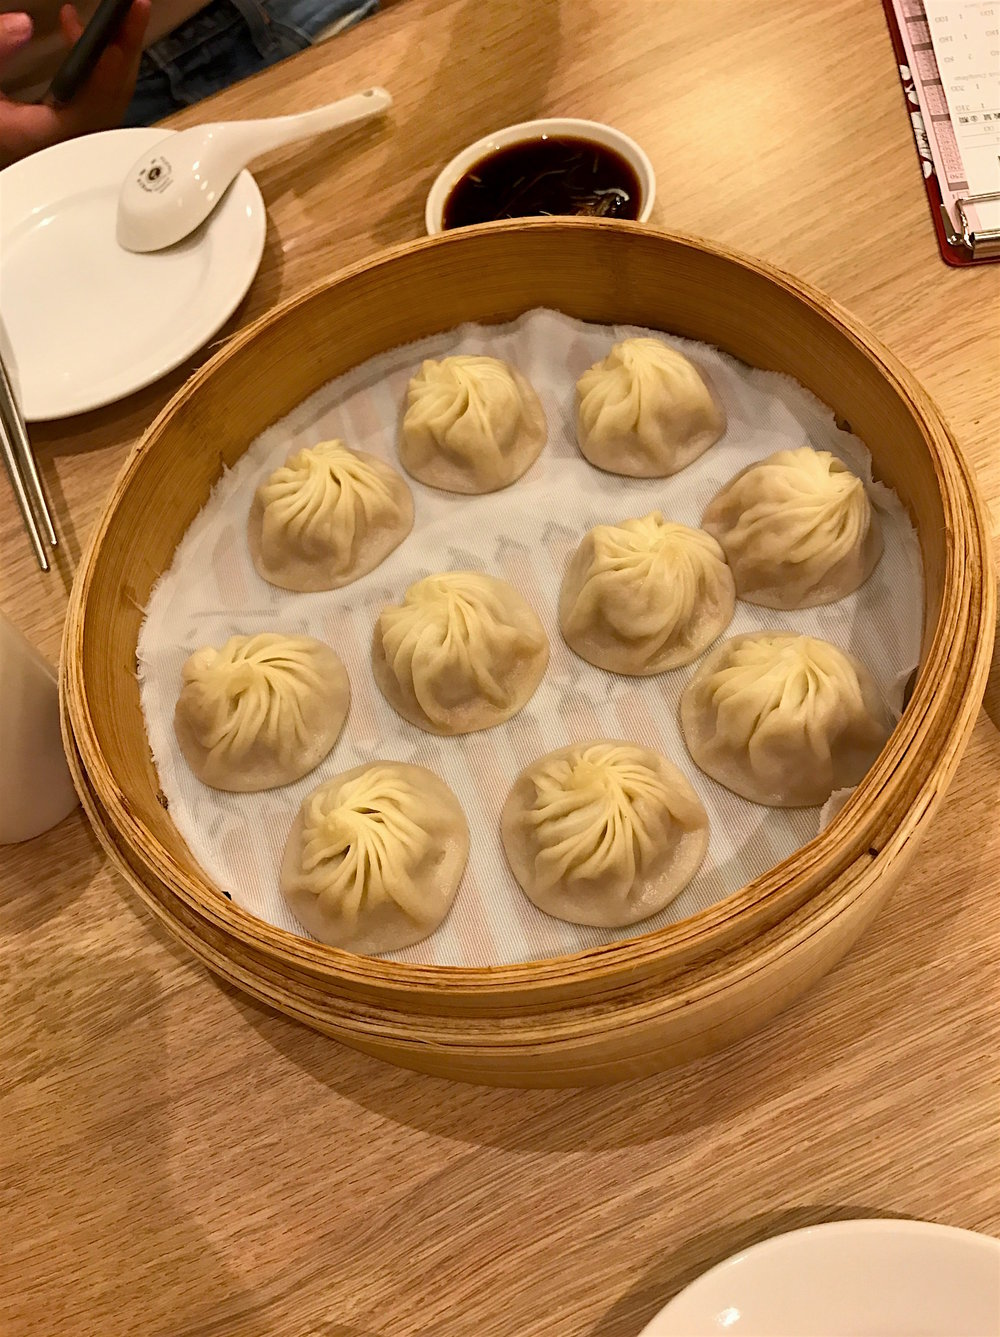 The legendary soup dumplings at the popular Taiwanese chain Din Tai Fung